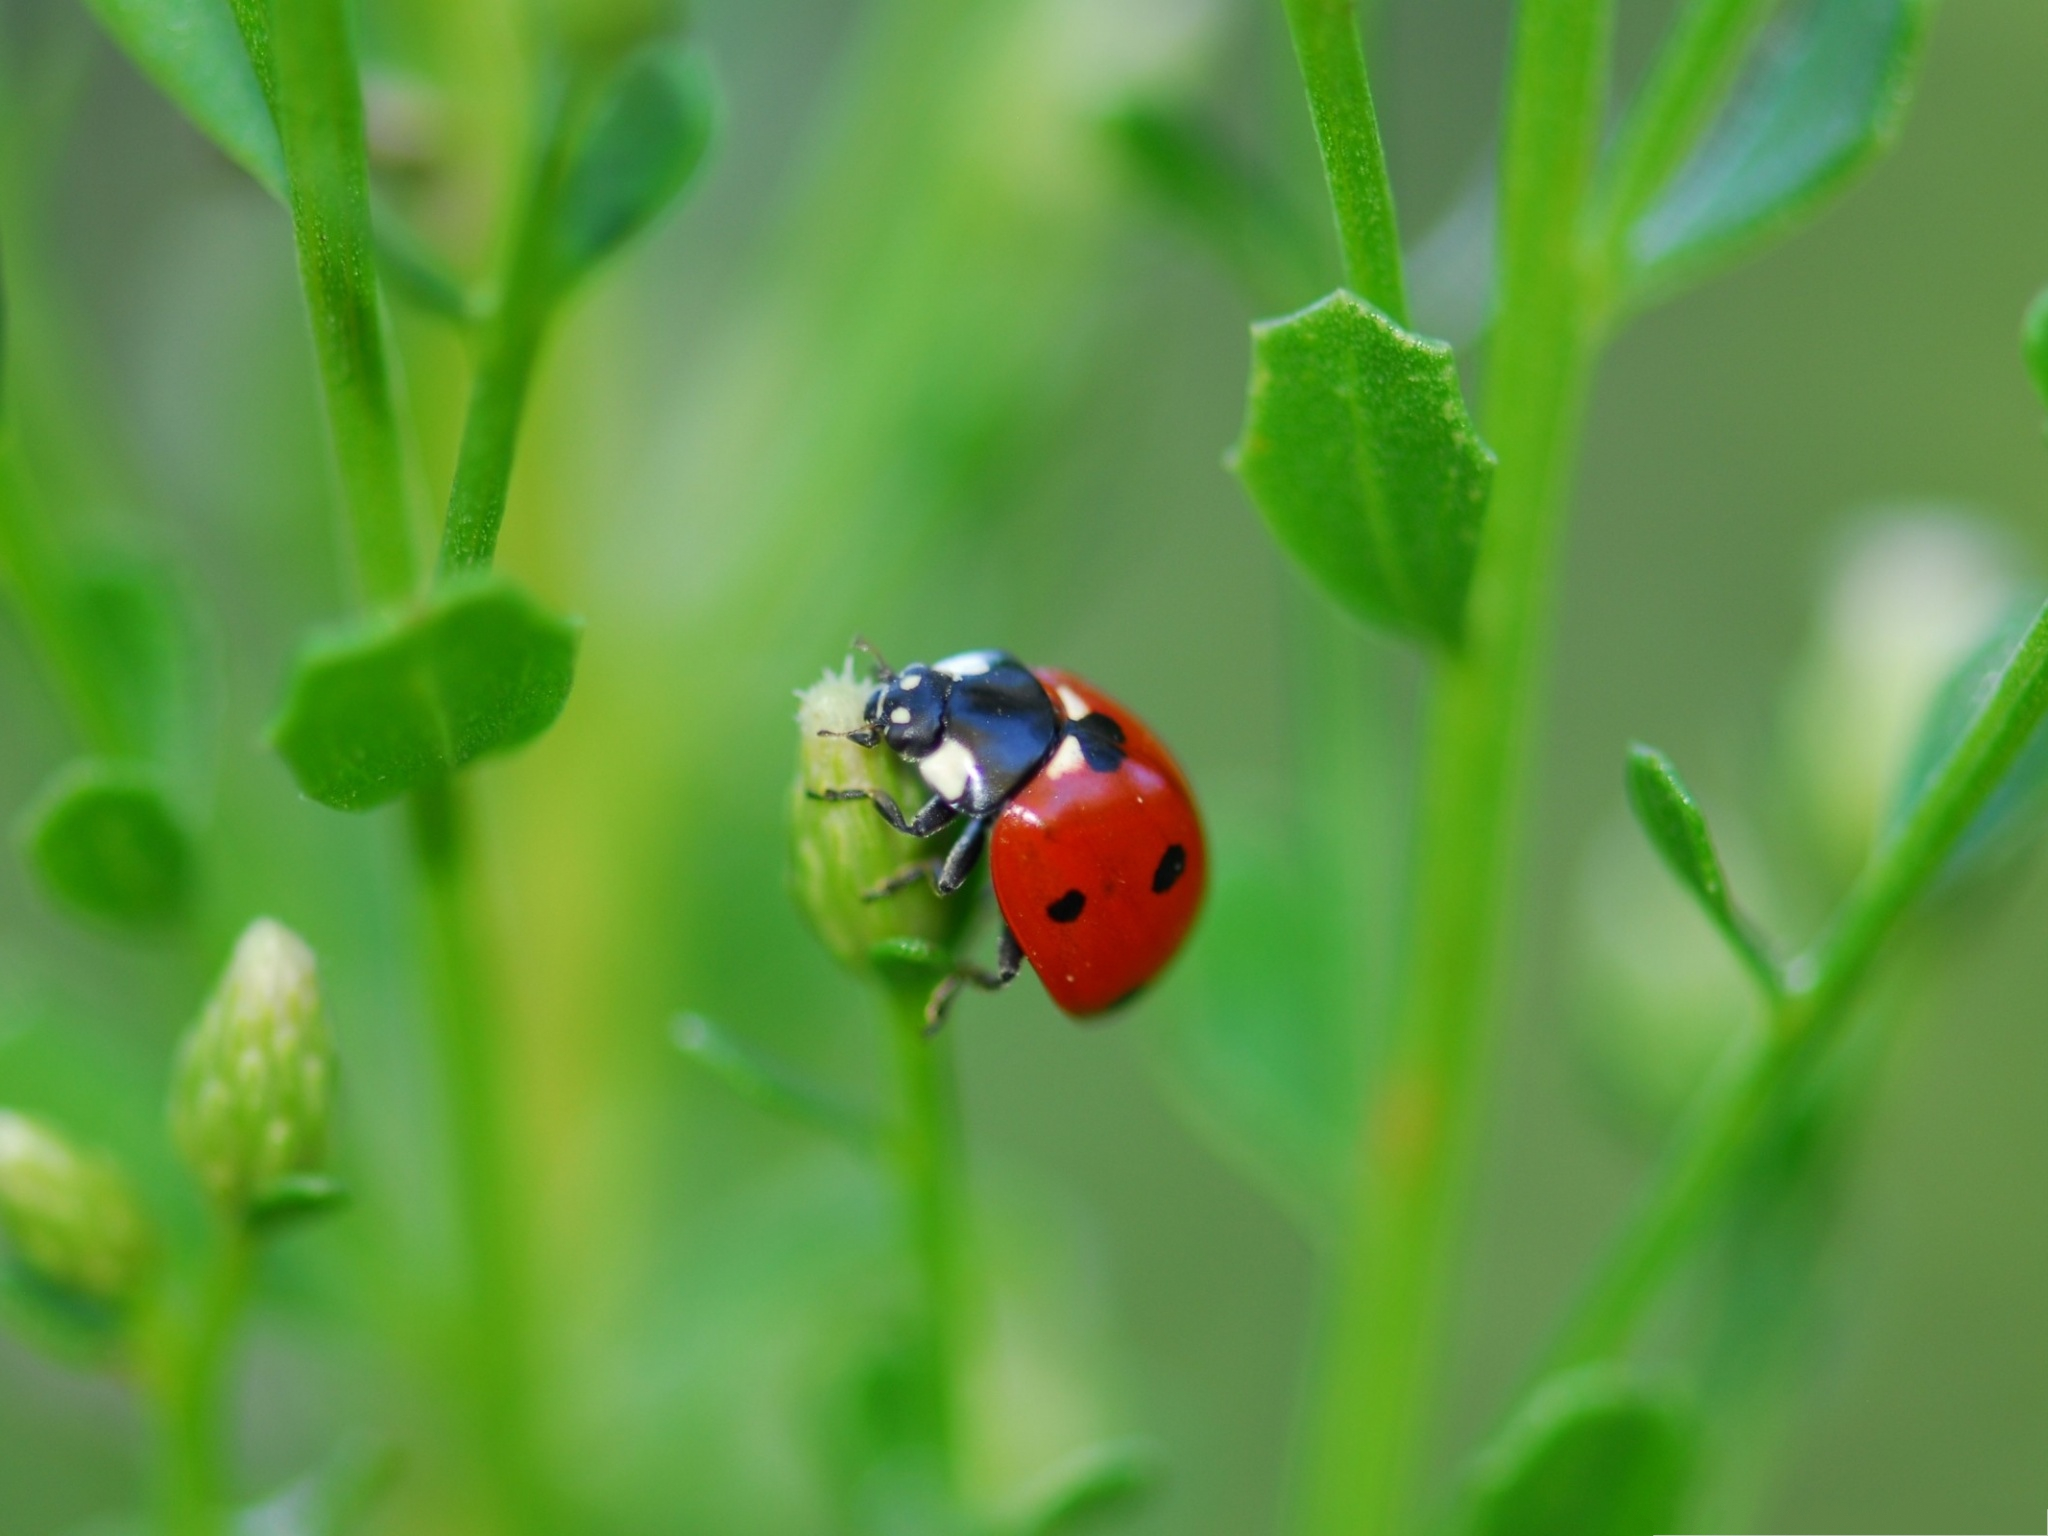 click to free download the wallpaper--Ladybugs On Flower, Flowers in Bud, a Ladybug on Them, Incredible Scene 2048X1536 free wallpaper download